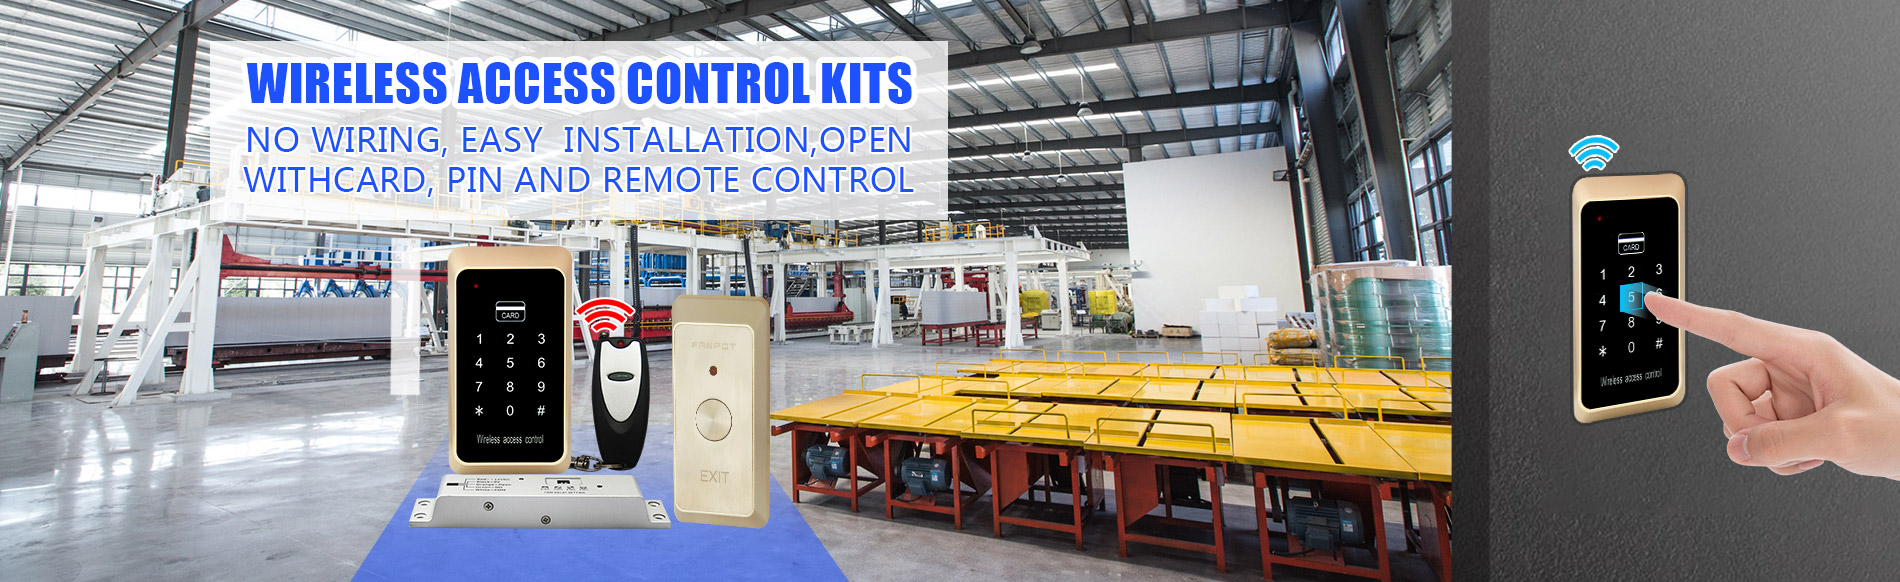 access control system using rfid